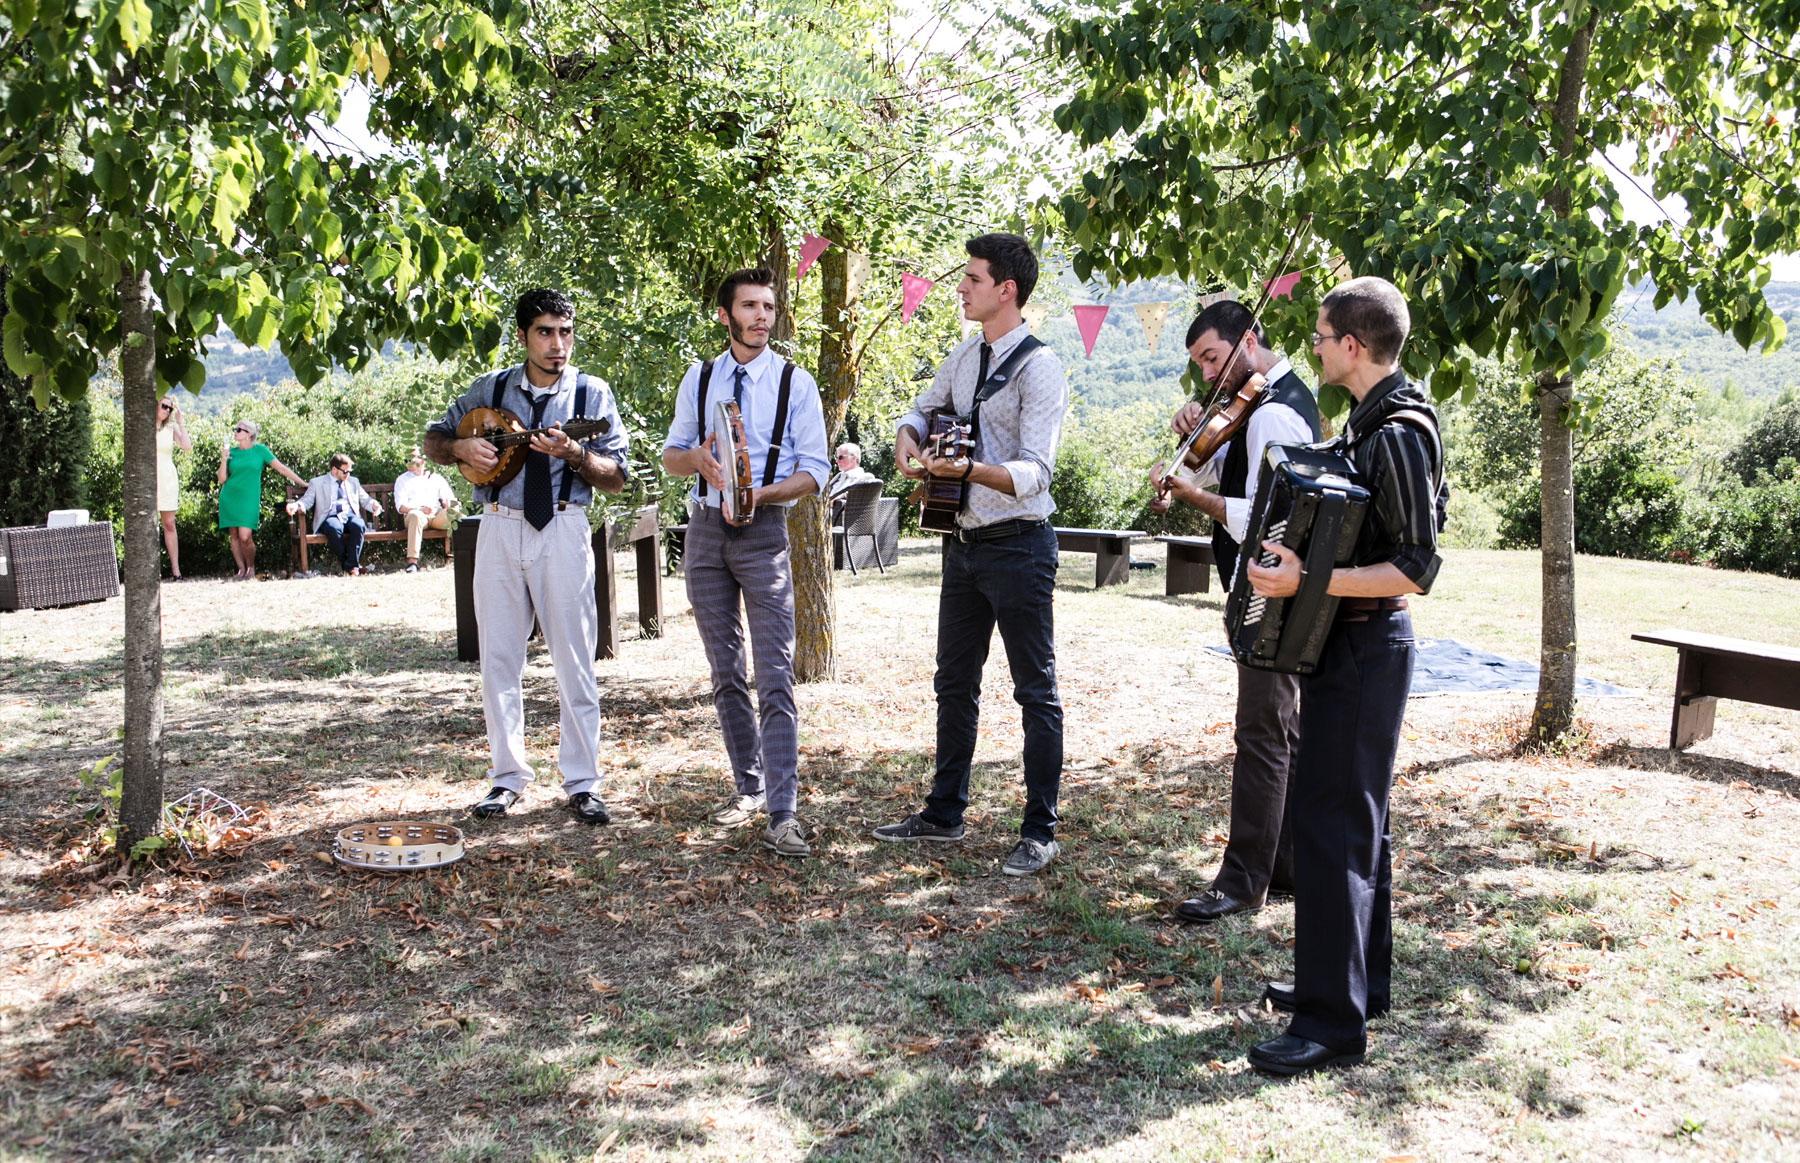 5 musicians playing folk instruments in gardens